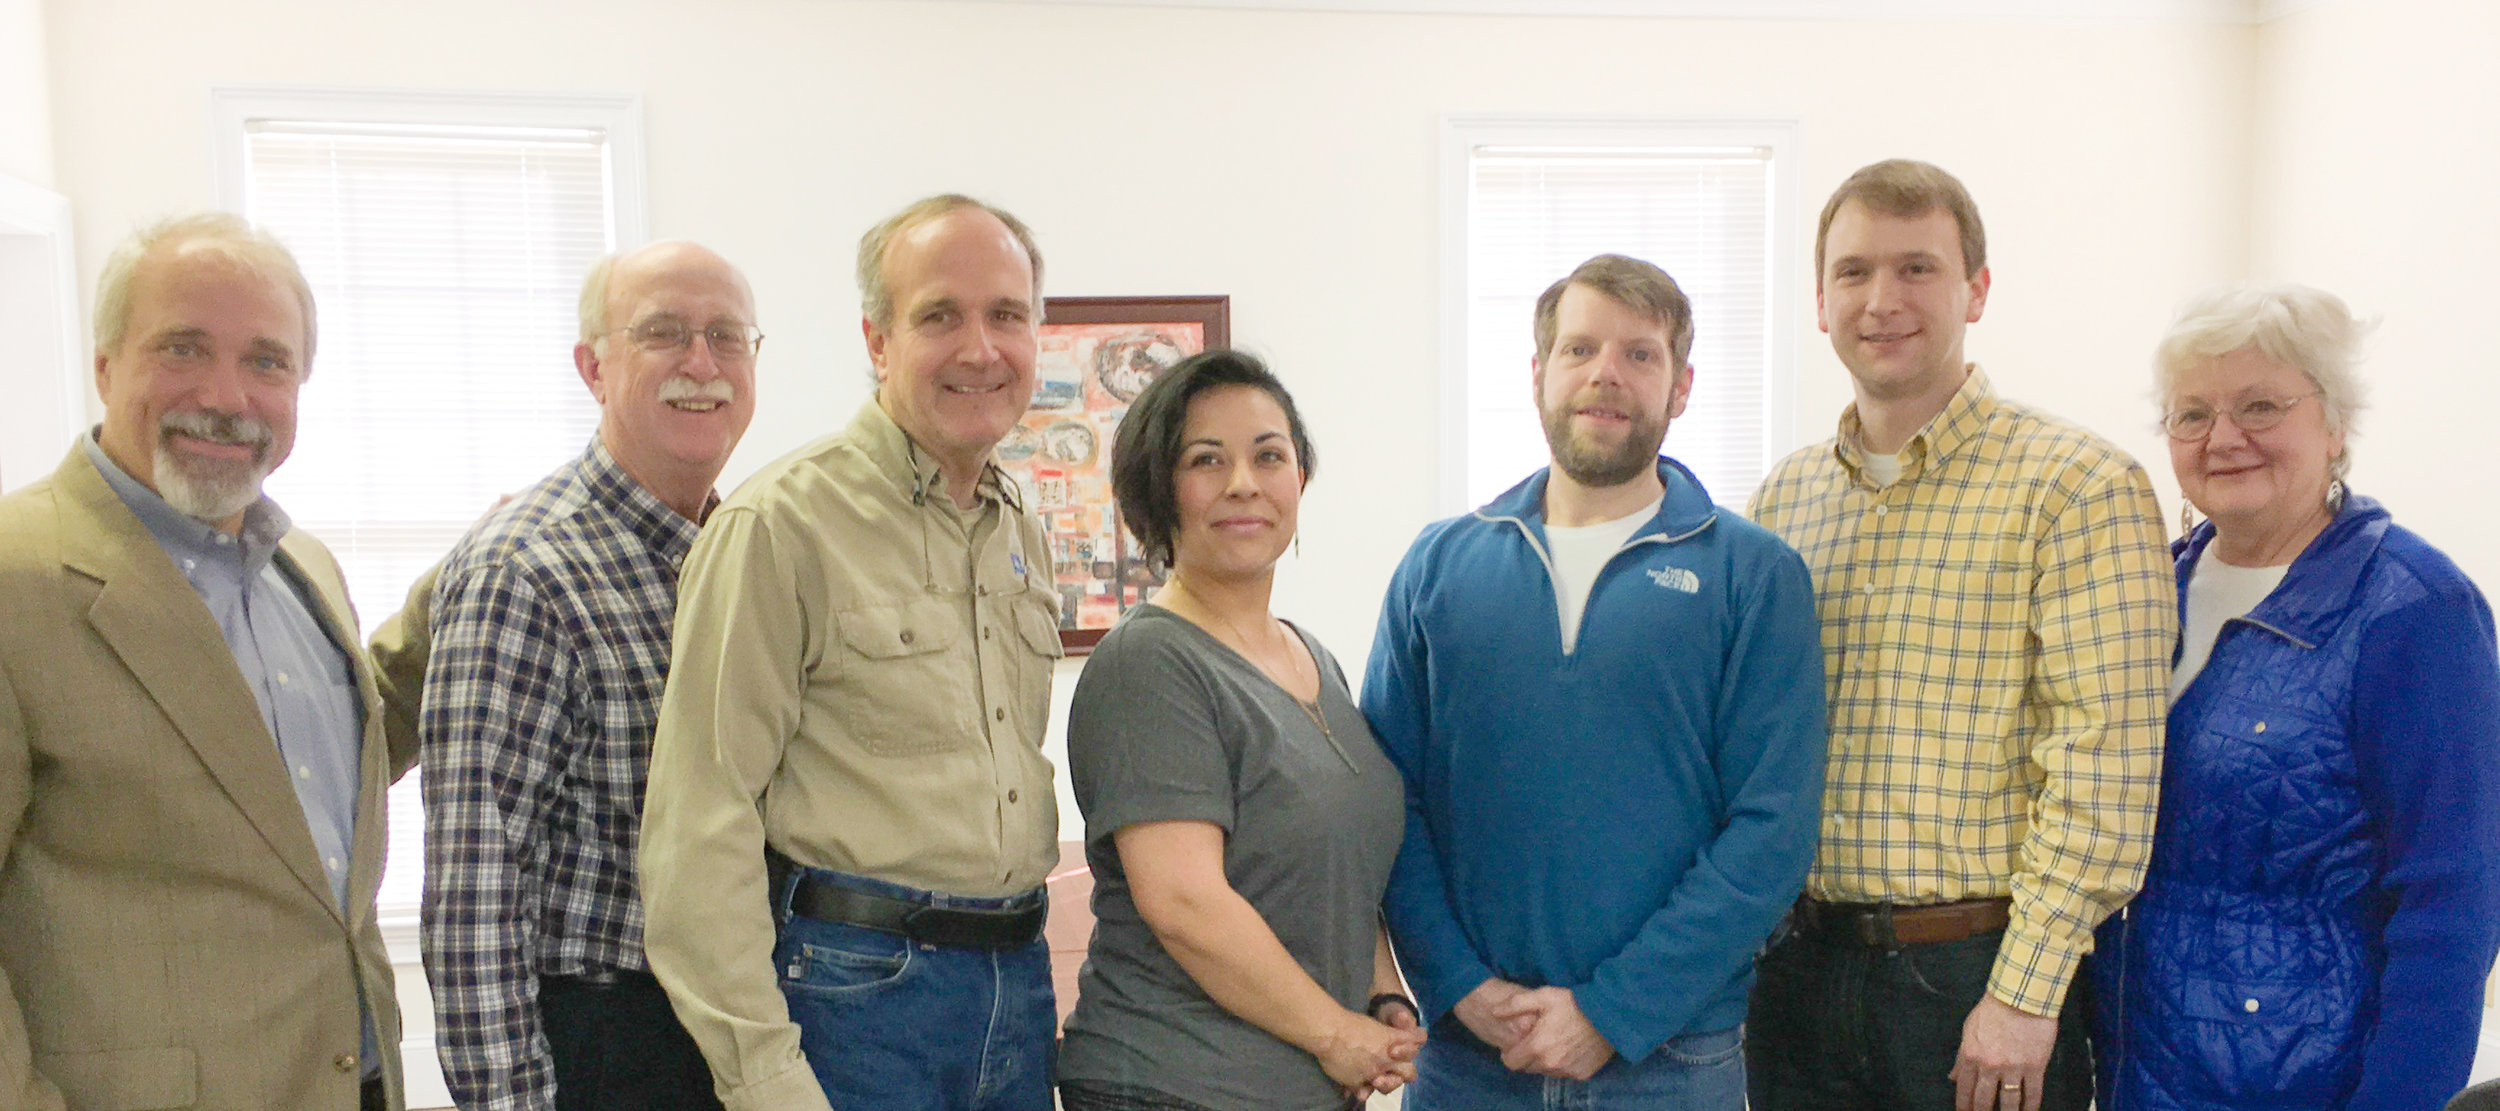 Pictured L-R: David Aft, president of the Community Foundation of Northwest Georgia, meet with board members from Keep Dalton-Whitfield Beautiful recently to establish an endowment fund. Also pictured are board members Clyde Taylor, Phillip Pfeifer, Liz Swafford, Anthony Cline, Aaron Marcelli, Patricia Edwards.